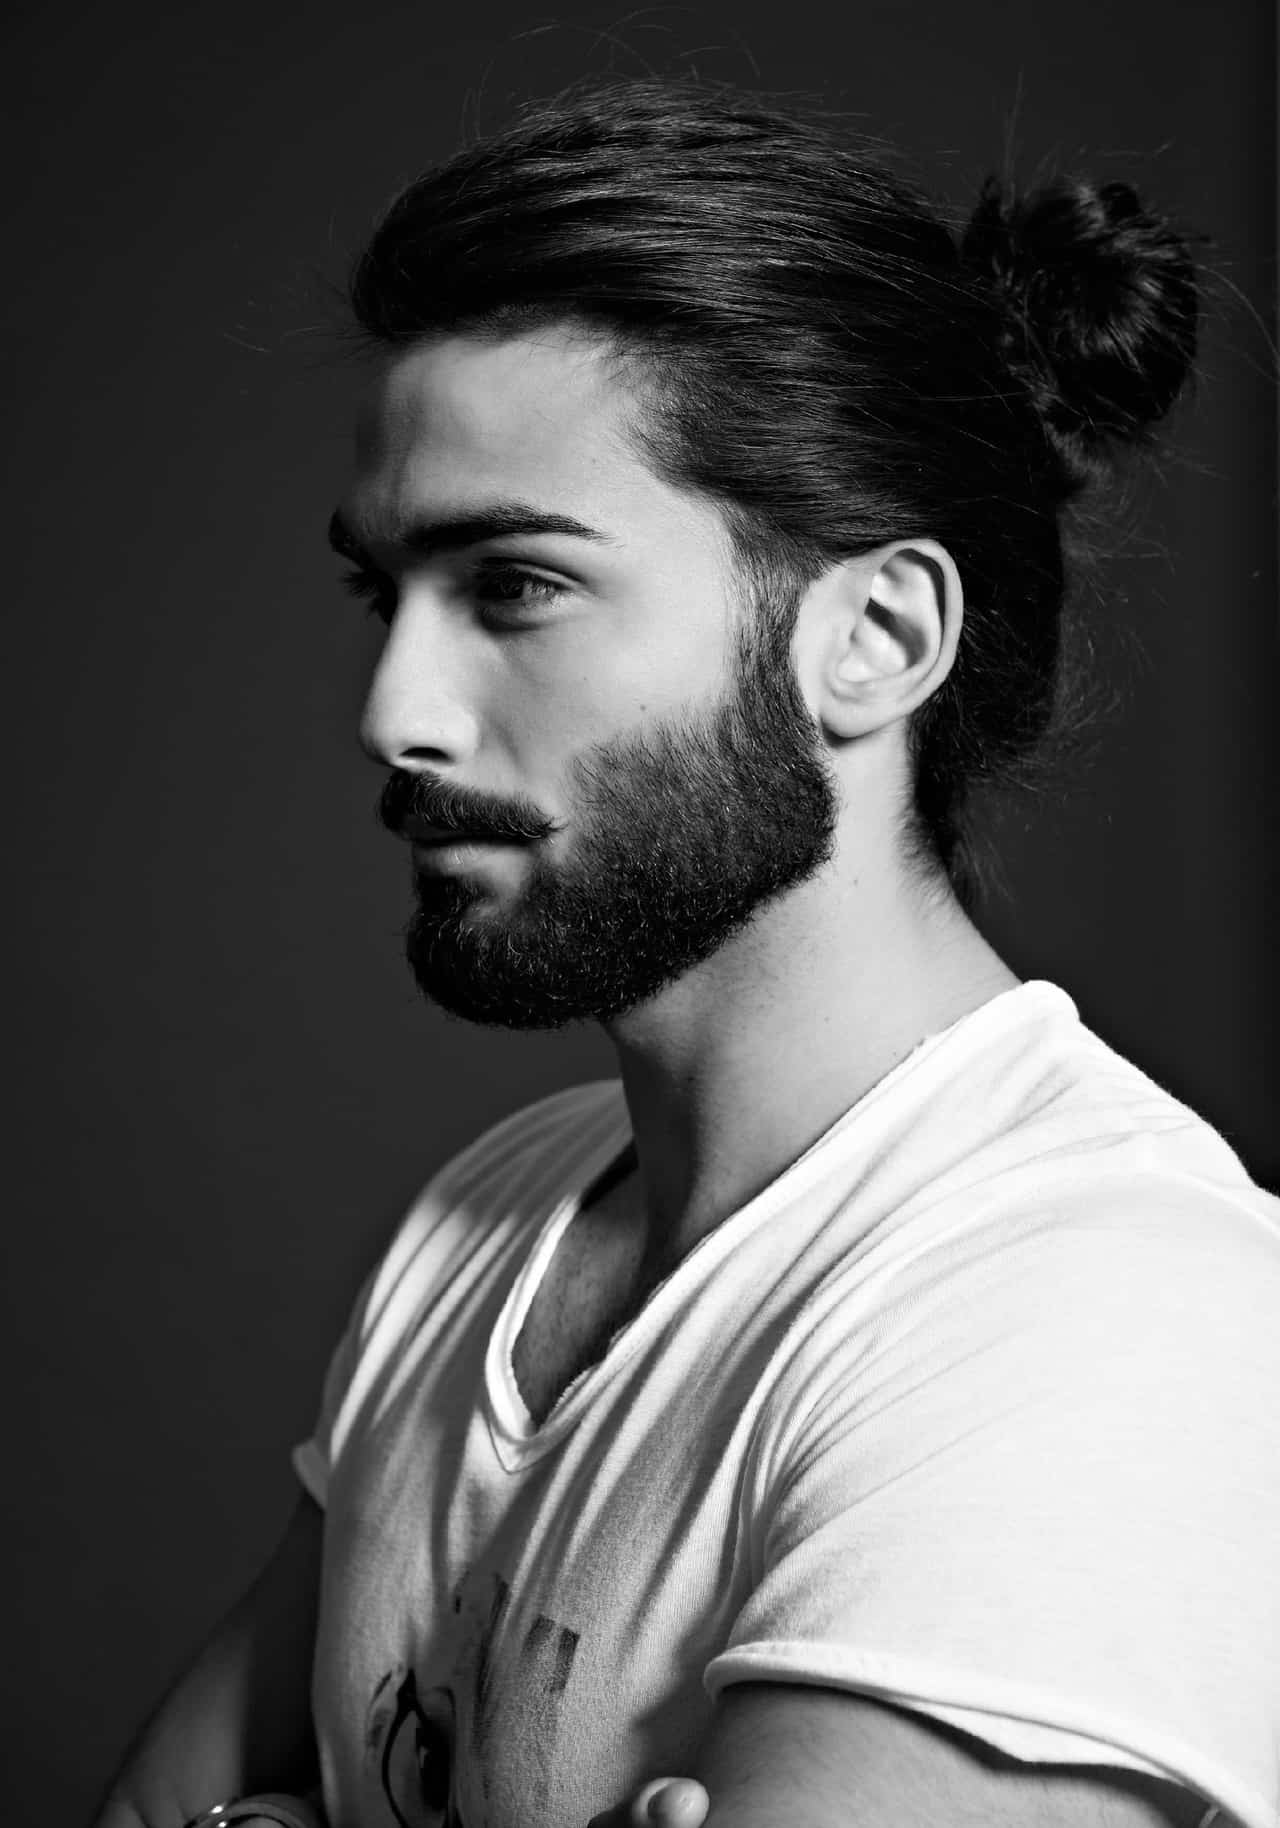 Marvelous Are All Men Growing Their Hair To Get Some Buns Hairstyles For Men Maxibearus